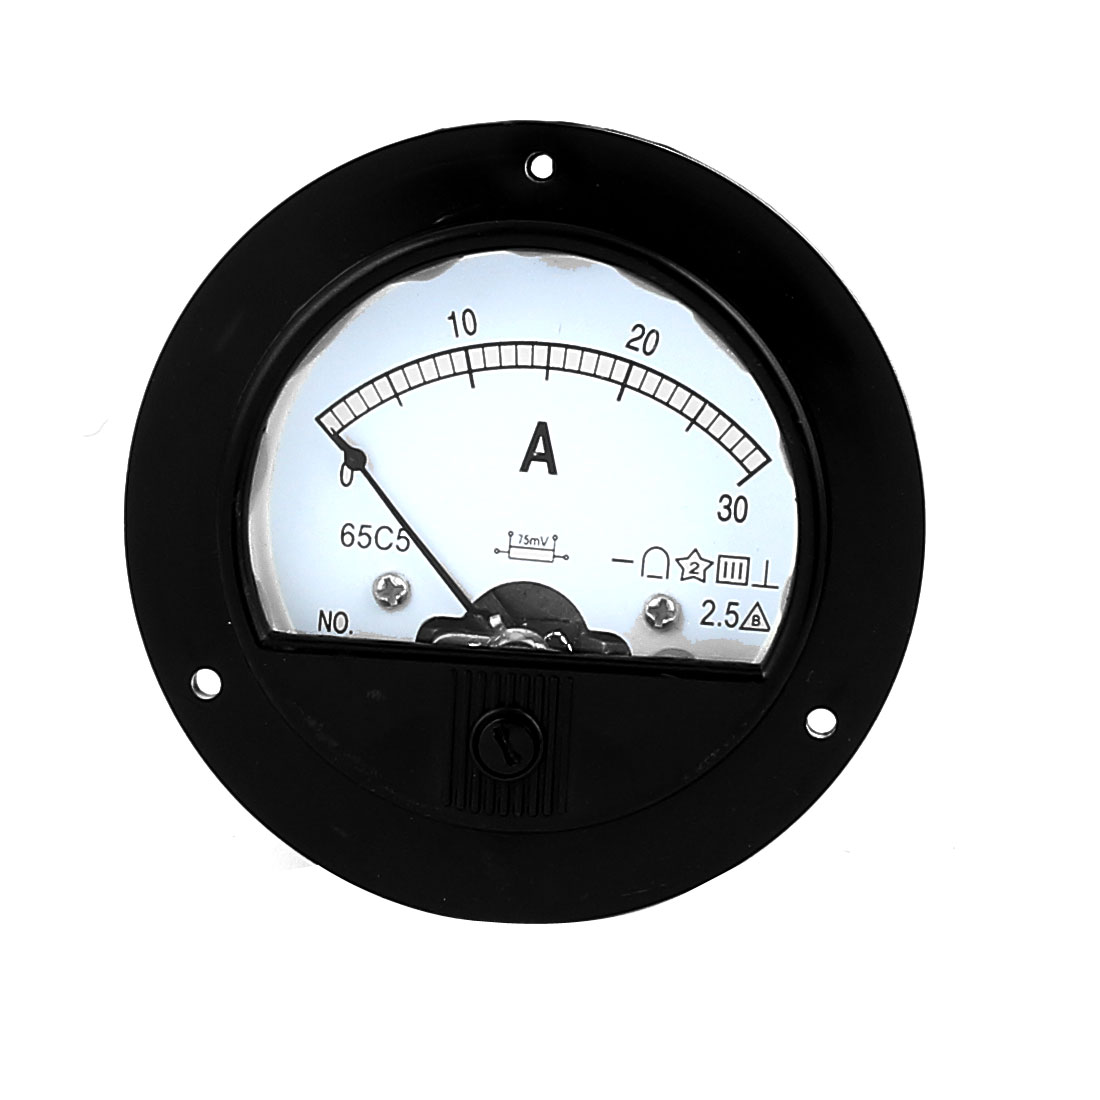 DC 30A Analogue Panel Ampmeter Current Meter Gauge Analog Ammeter